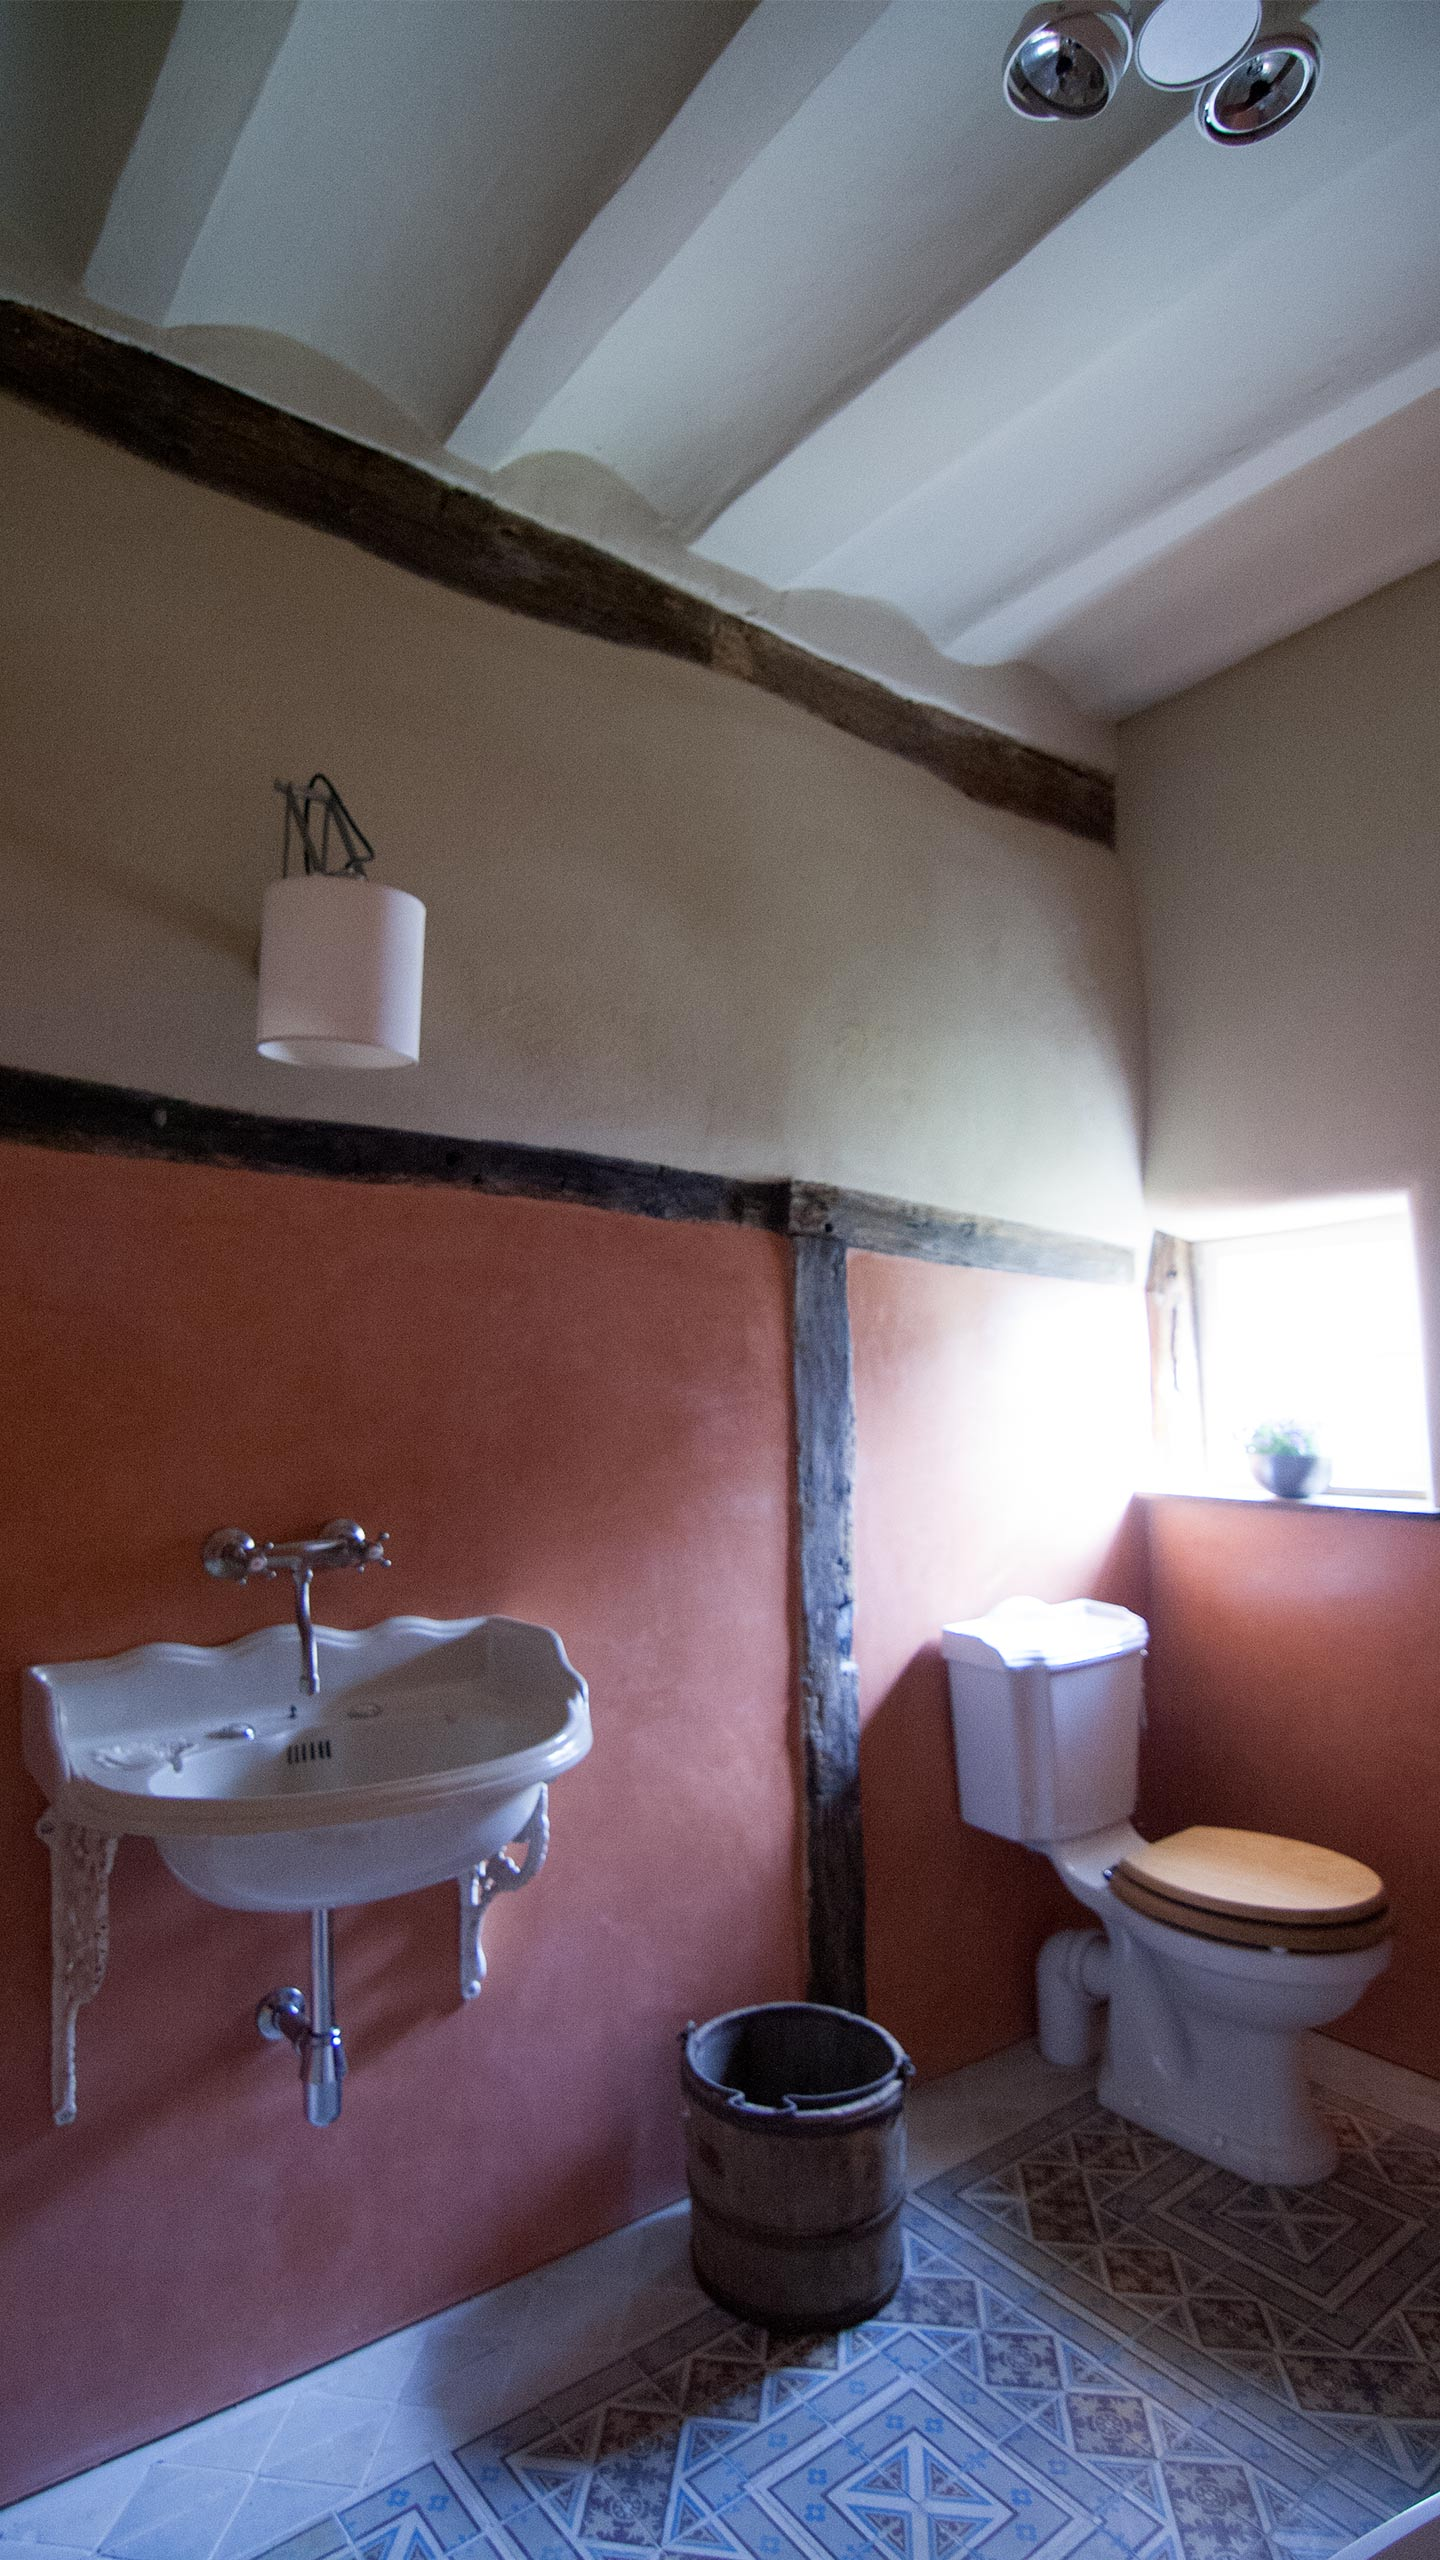 Residential - Coral red bathroom, Toilet and sink